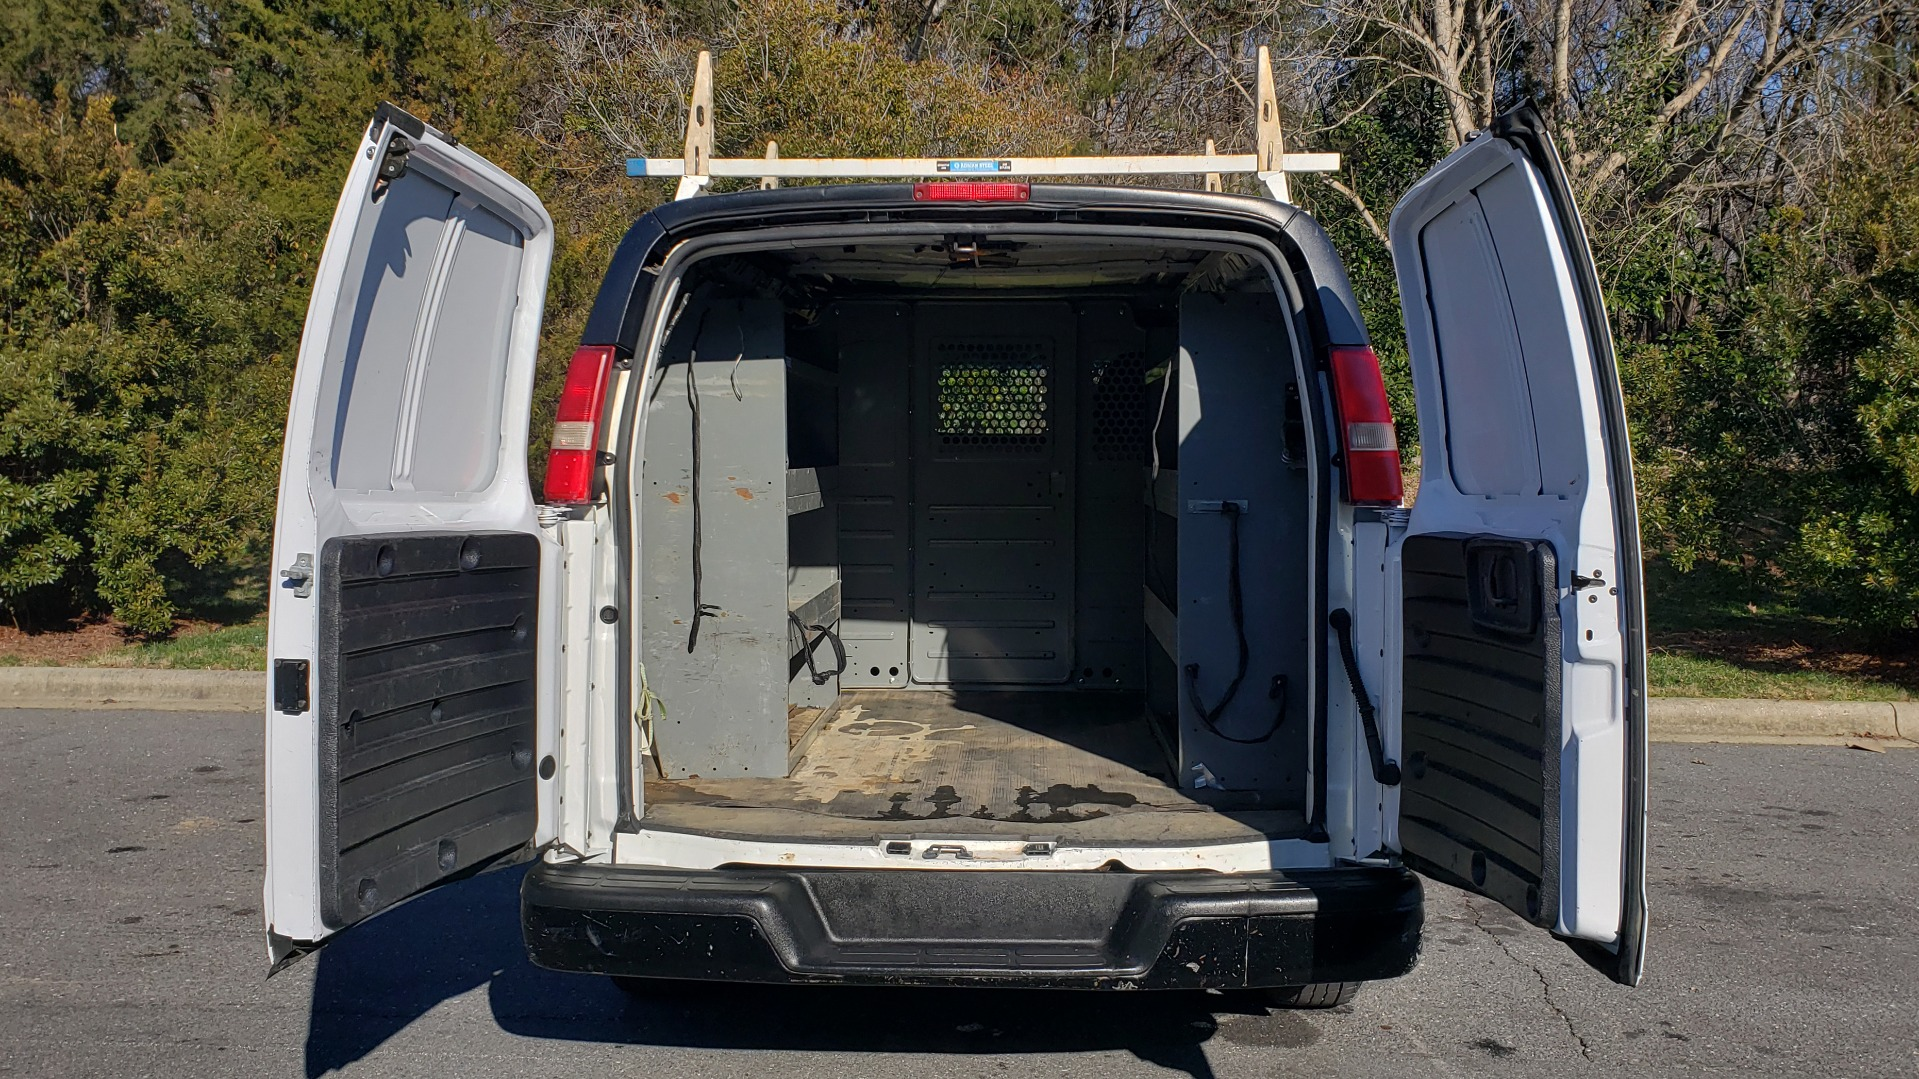 Used 2012 Chevrolet EXPRESS WORK VAN 1500 / 135 WB / 4.3L V6 / 4-SPD AUTO / ROOF RACK for sale $11,600 at Formula Imports in Charlotte NC 28227 23